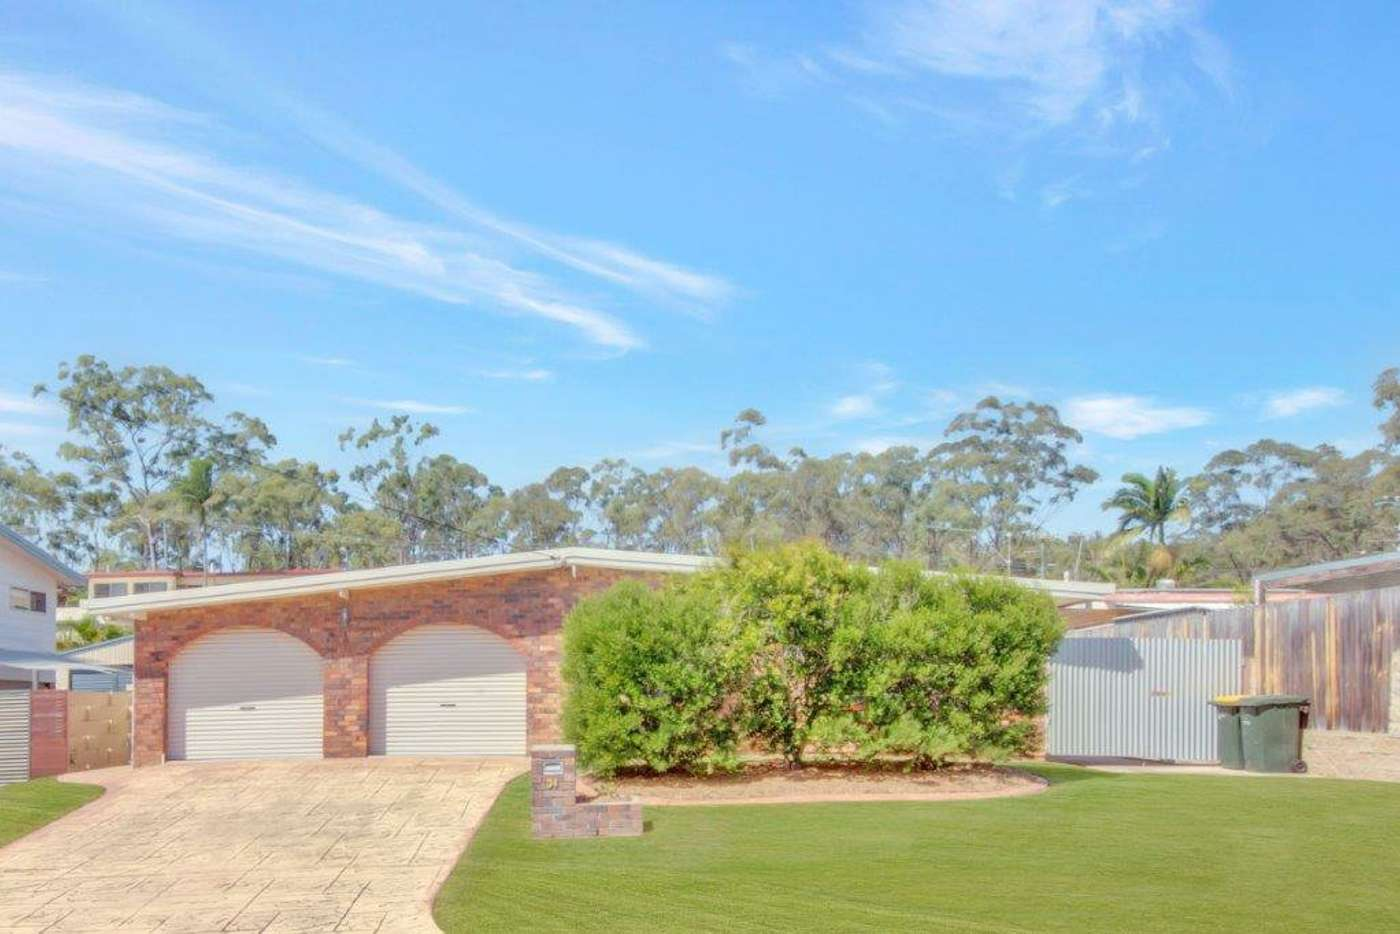 Main view of Homely house listing, 34 Venus Street, Telina QLD 4680